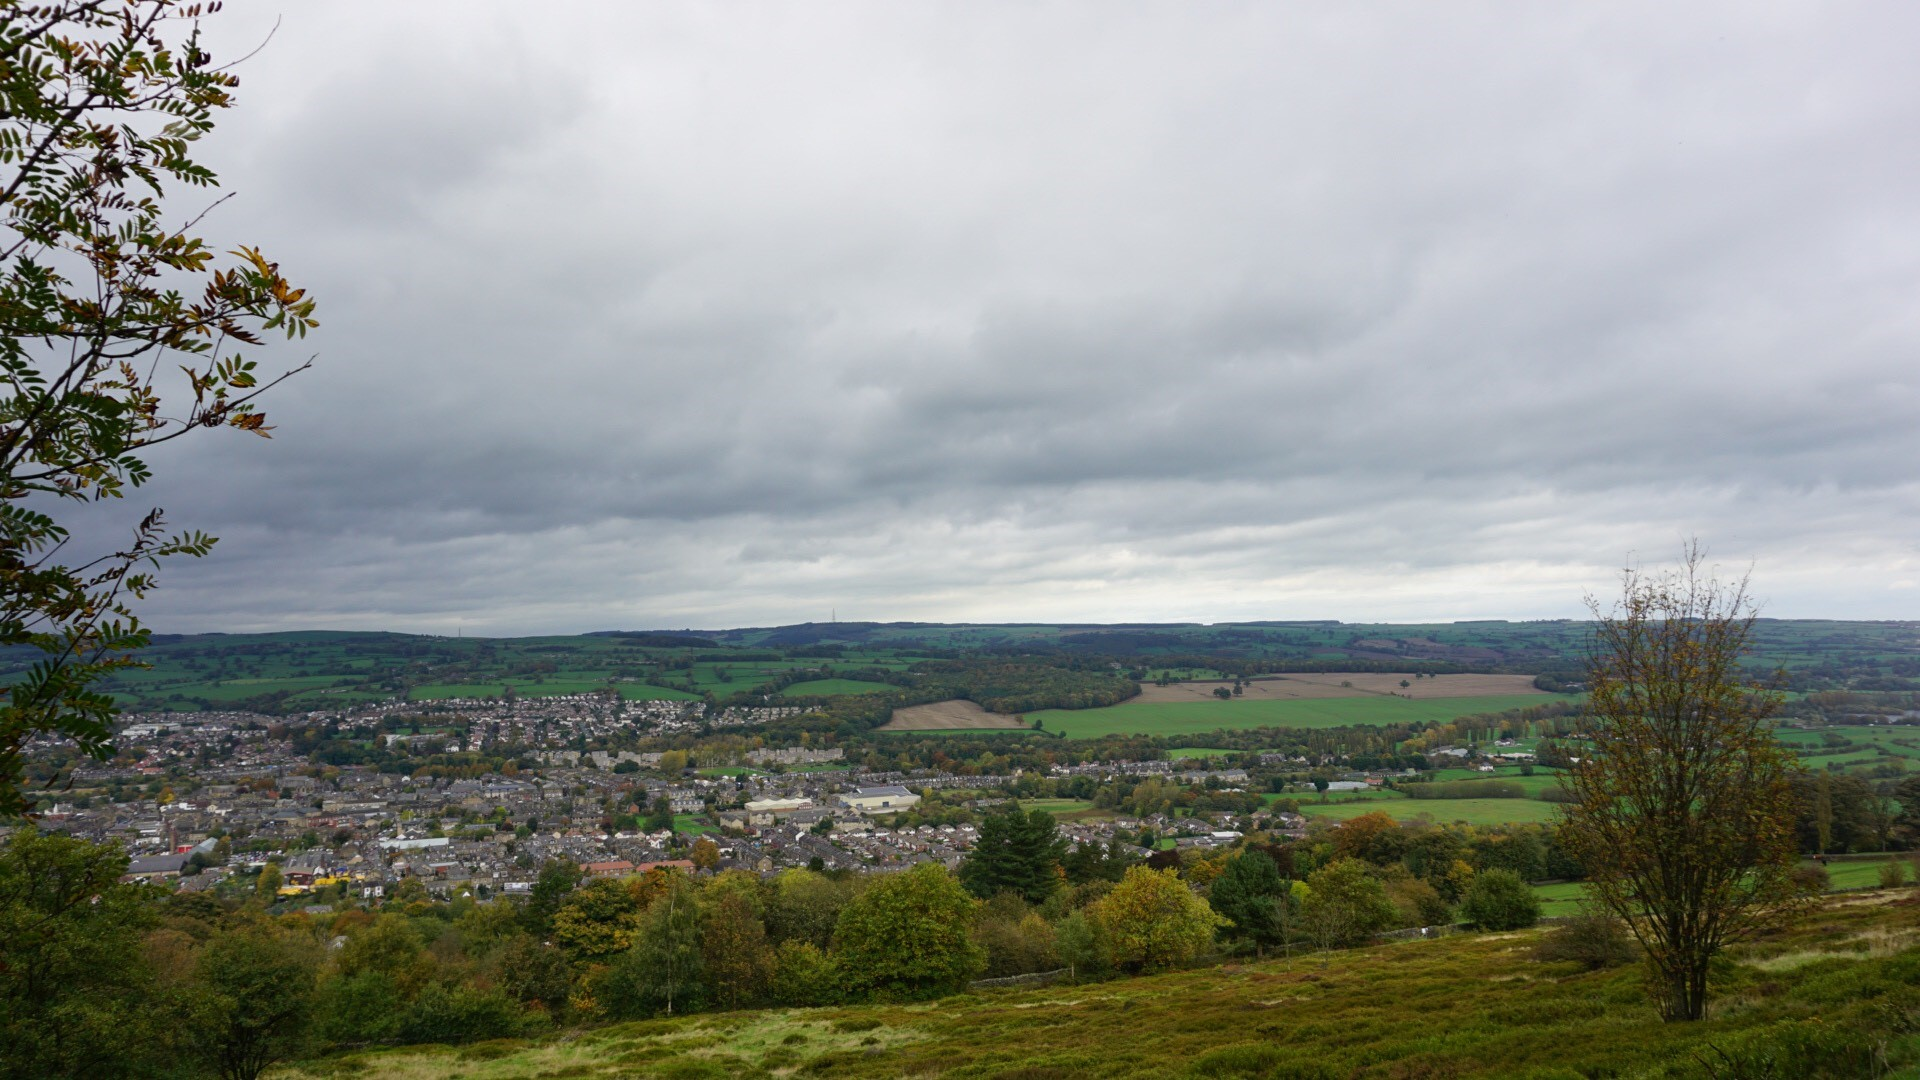 Student Mulahella's image of Otley Chevin